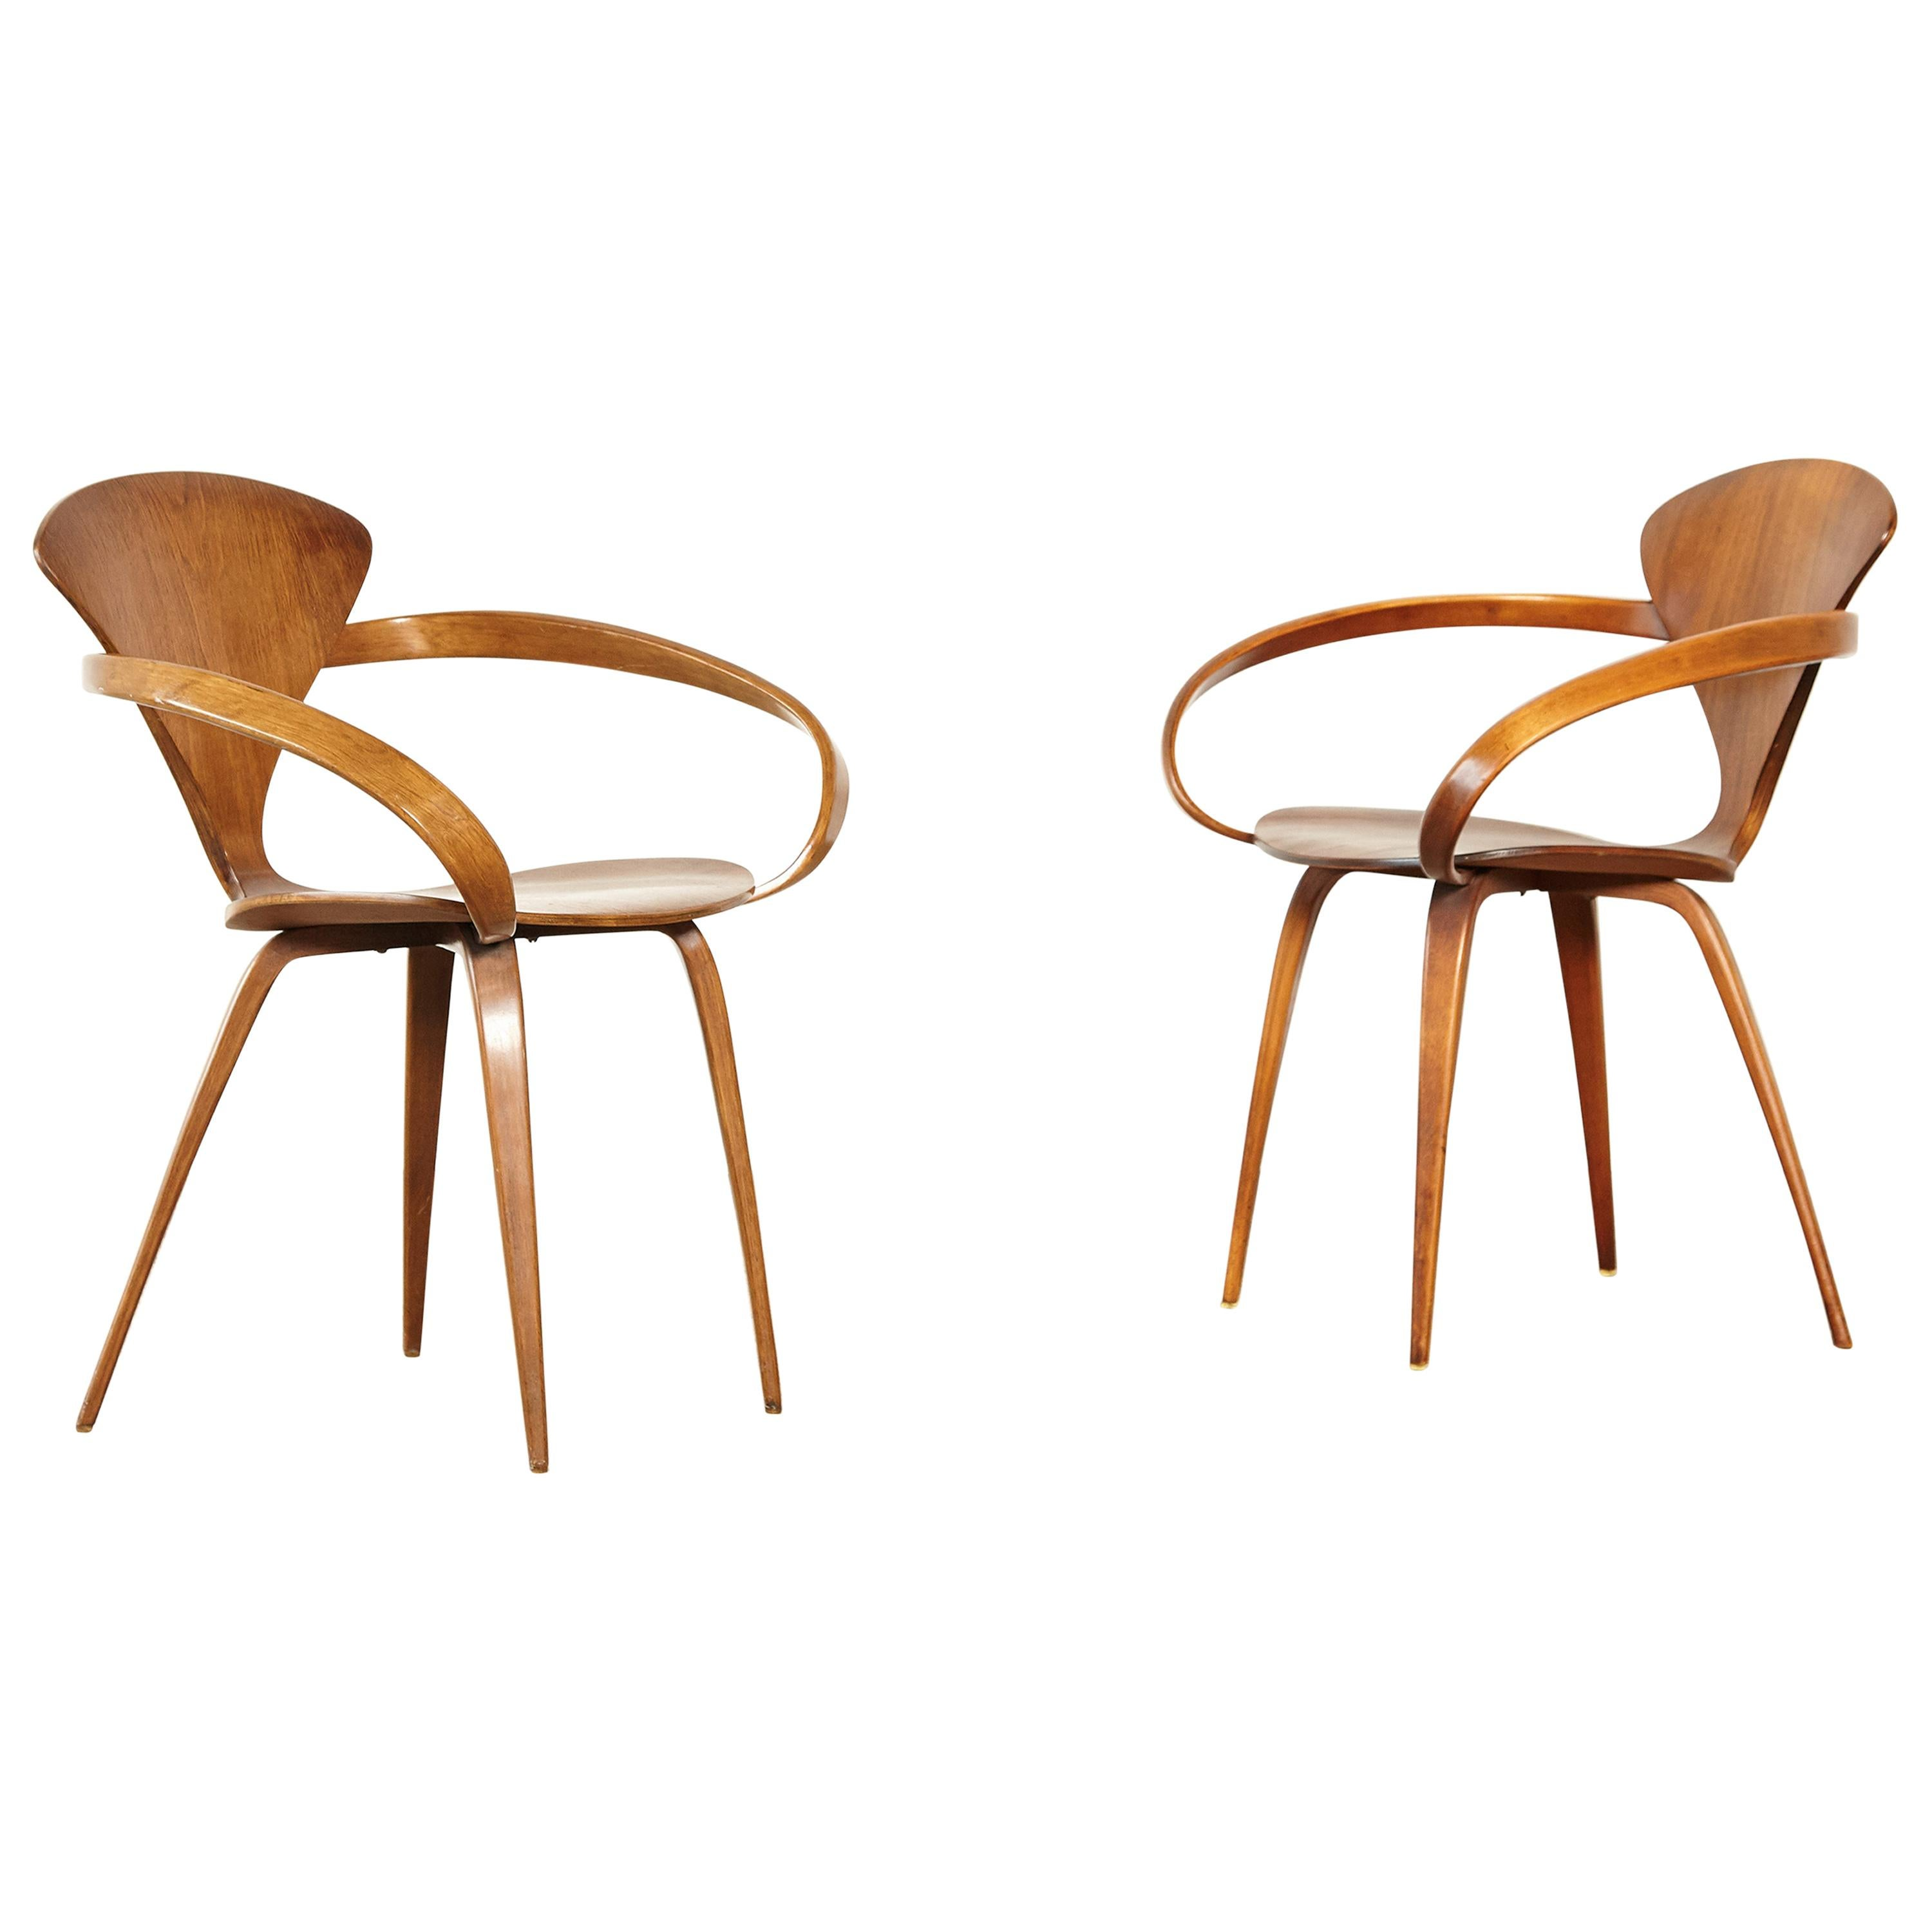 Pair of Norman Cherner Pretzel Dining Chairs, Made by Plycraft, USA, 1960s